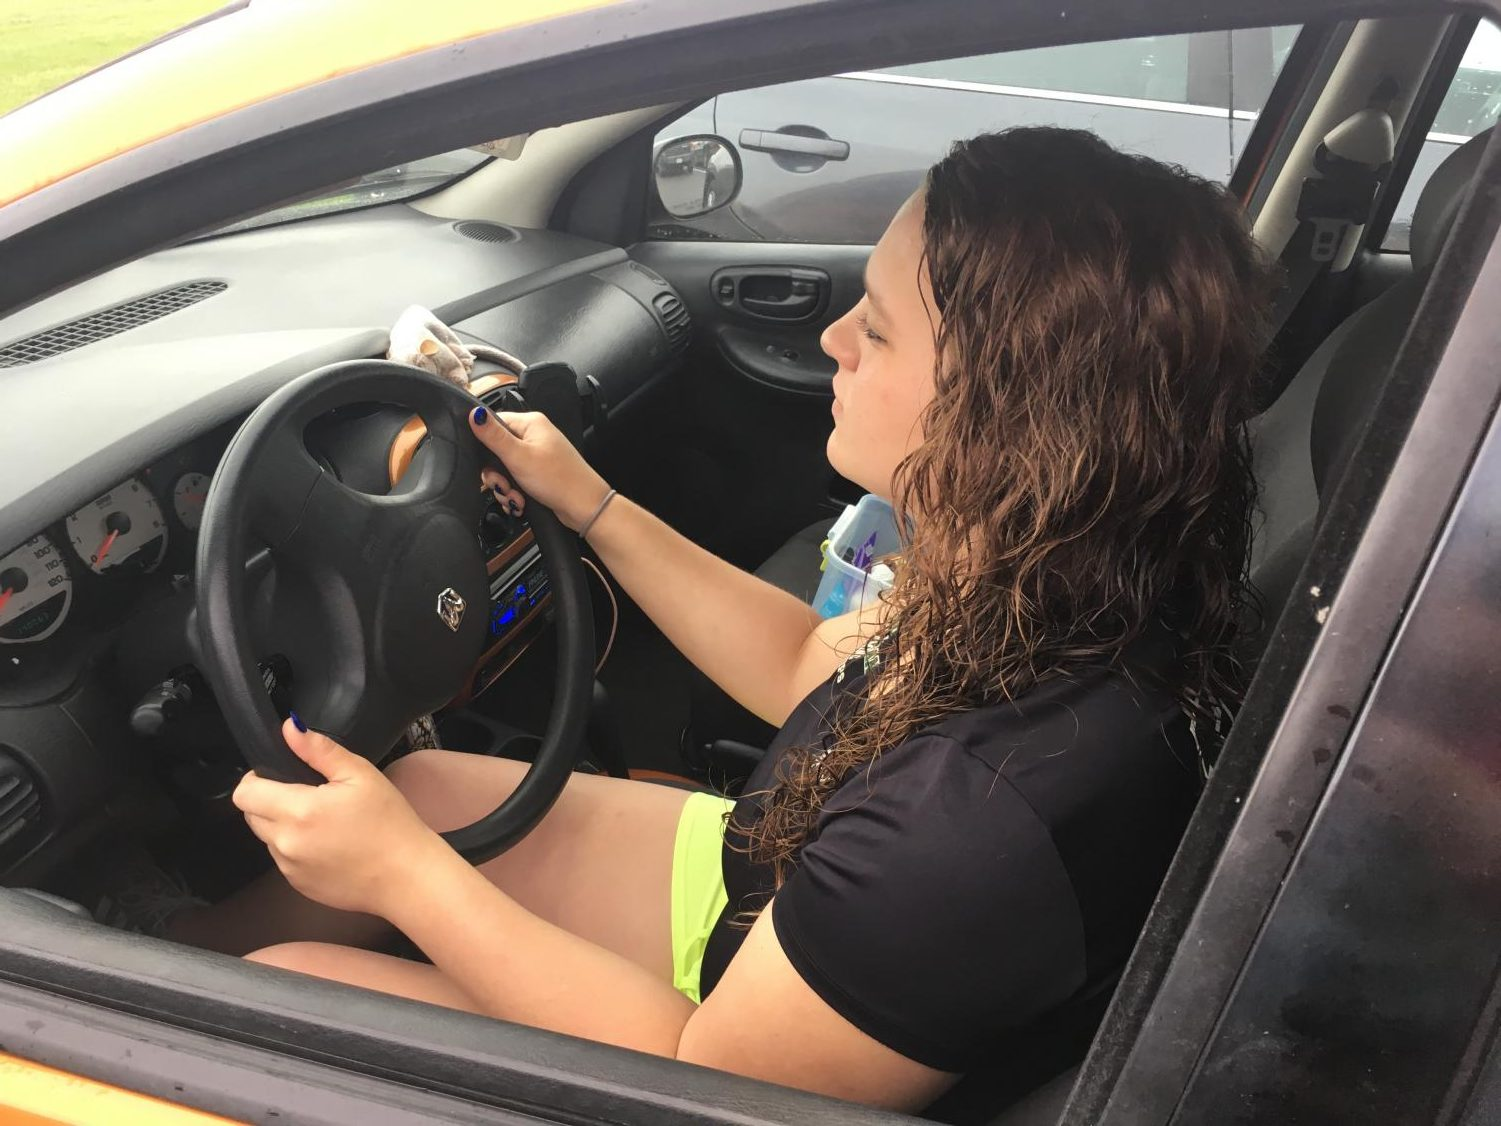 Parking in the school parking lot, Sammie Mills (12) shows off skills learned through taking Driver's Education and Driver's Simulation